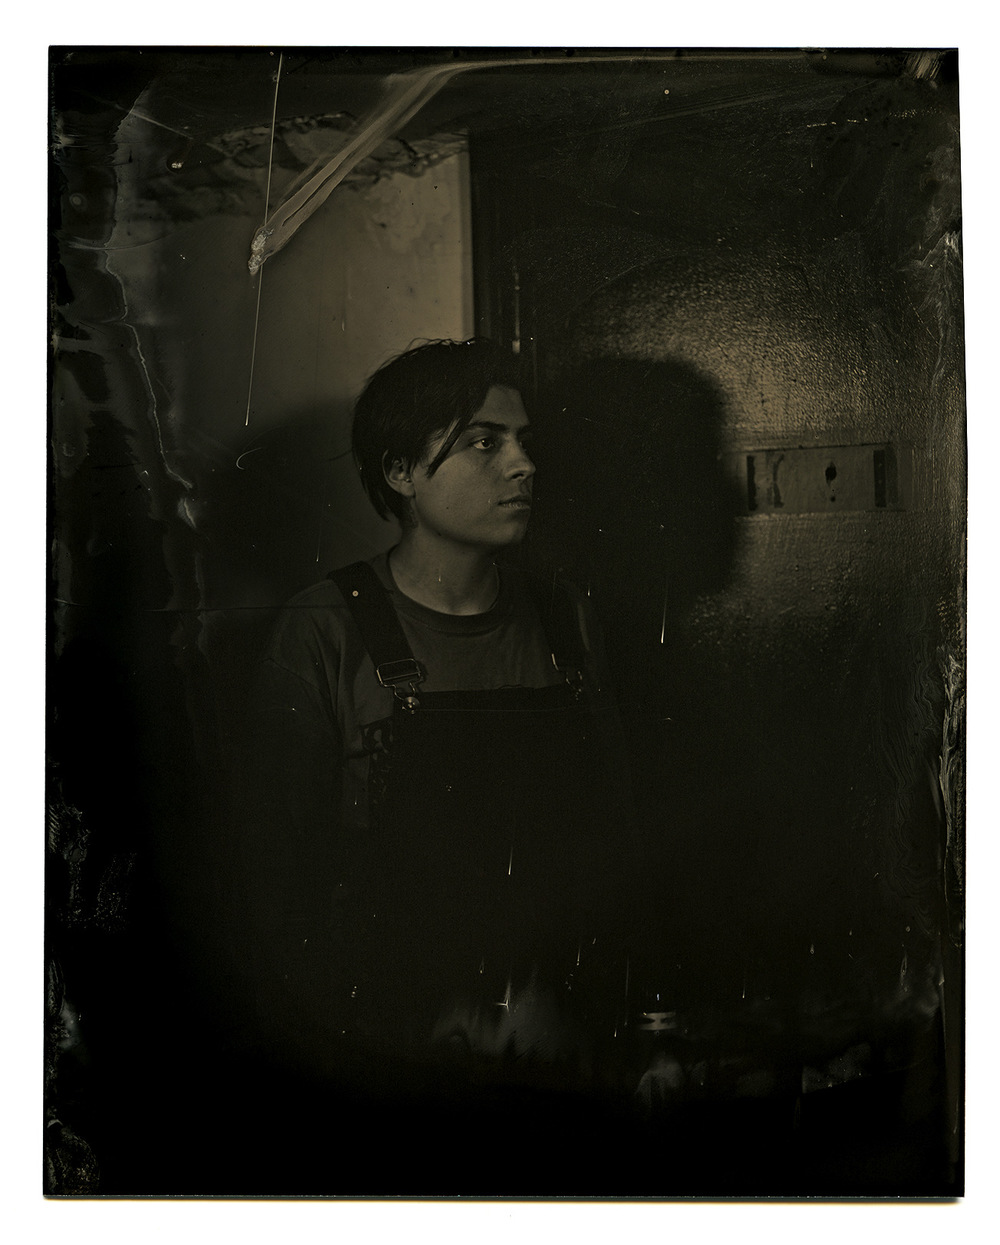 Brian Garbrecht - Rebecca Lasaponaro of And The Kids. Chicago, IL. 2017. Tintype